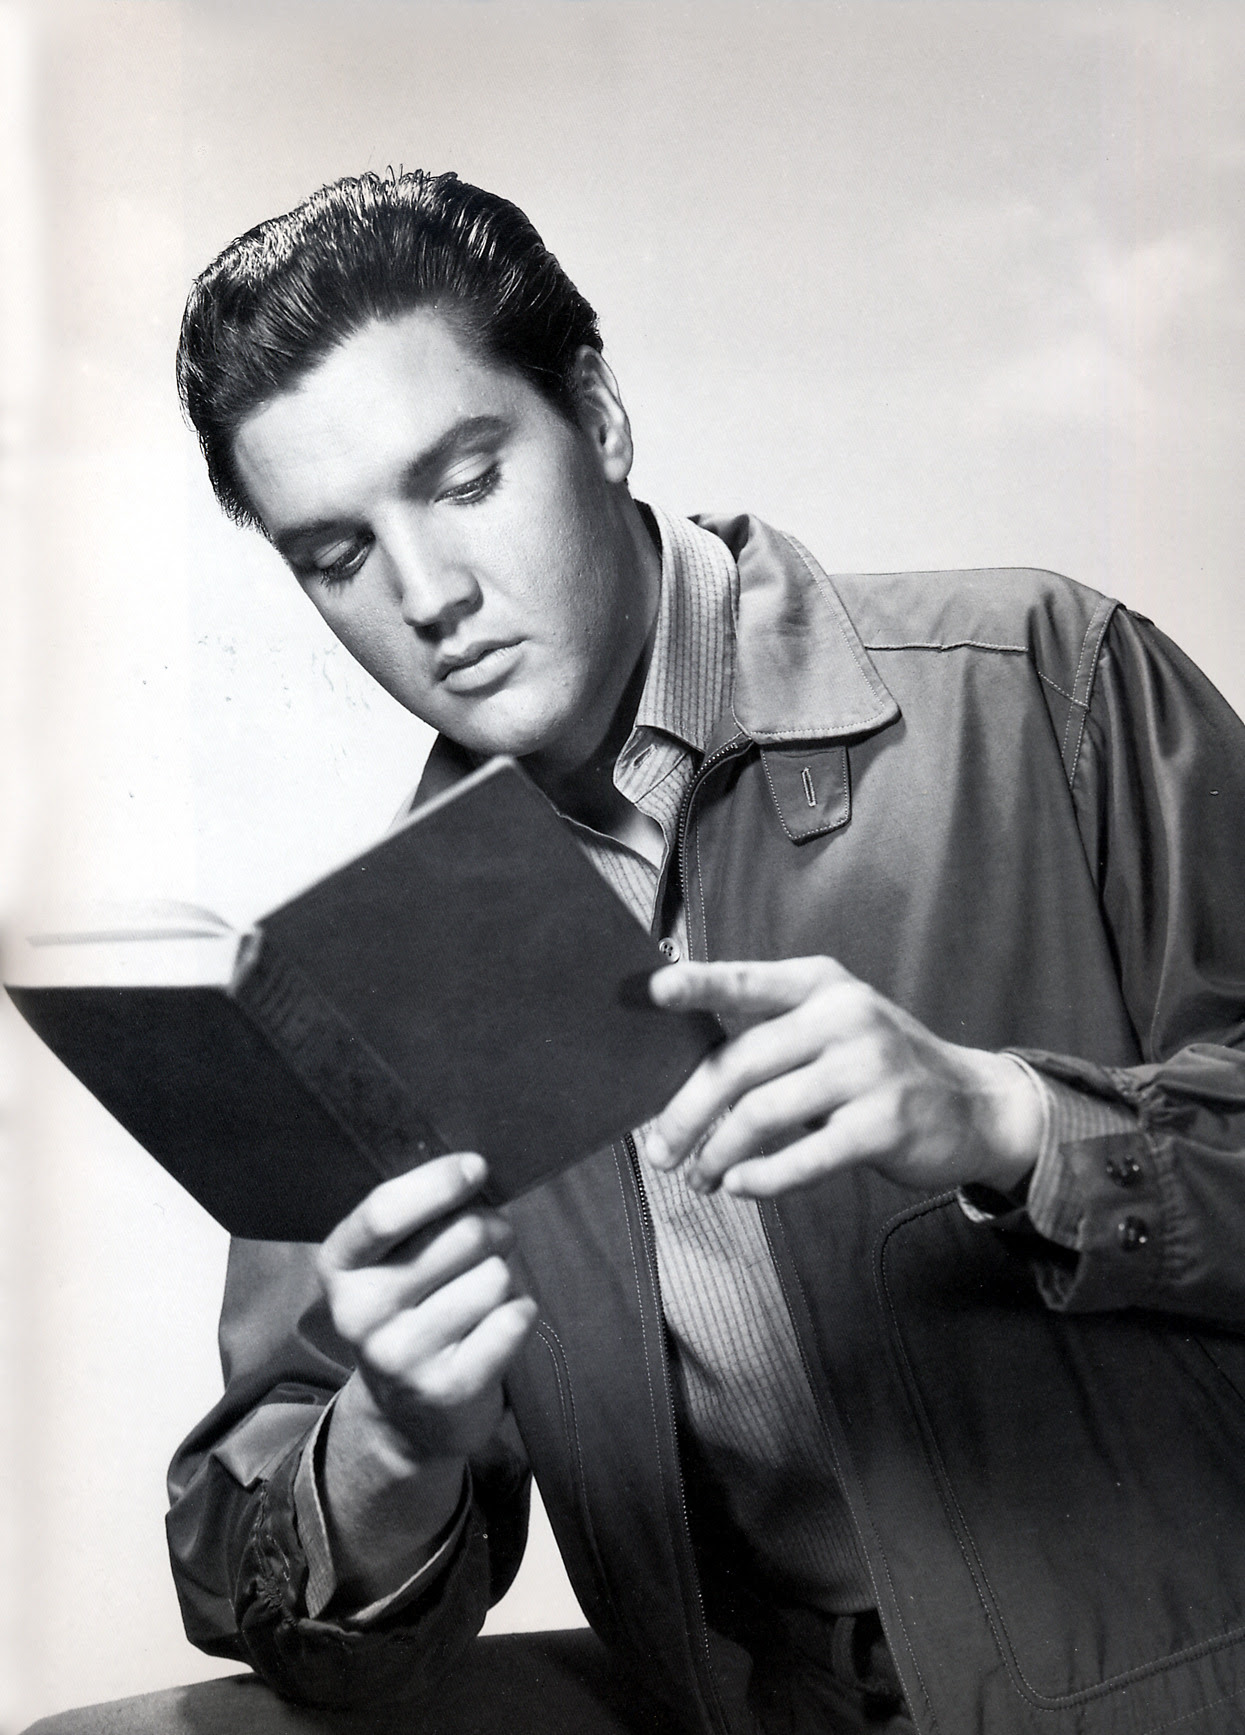 "Elvis reading, 1961. Elvis' favorite book list (books 1-10): The Impersonal Life; The Initiation of the World; The Prophet; The Mystical Christ; The Secret Doctrine; Life and Teachings of the Masters of the Far East; The Leaves of Morya's Garden, Volumes I & II; Red Tree (by ""Christine Hayes"" - Maia Christianne Nartoomid); The Philosophy of Shopenhauer; Life of Christ"